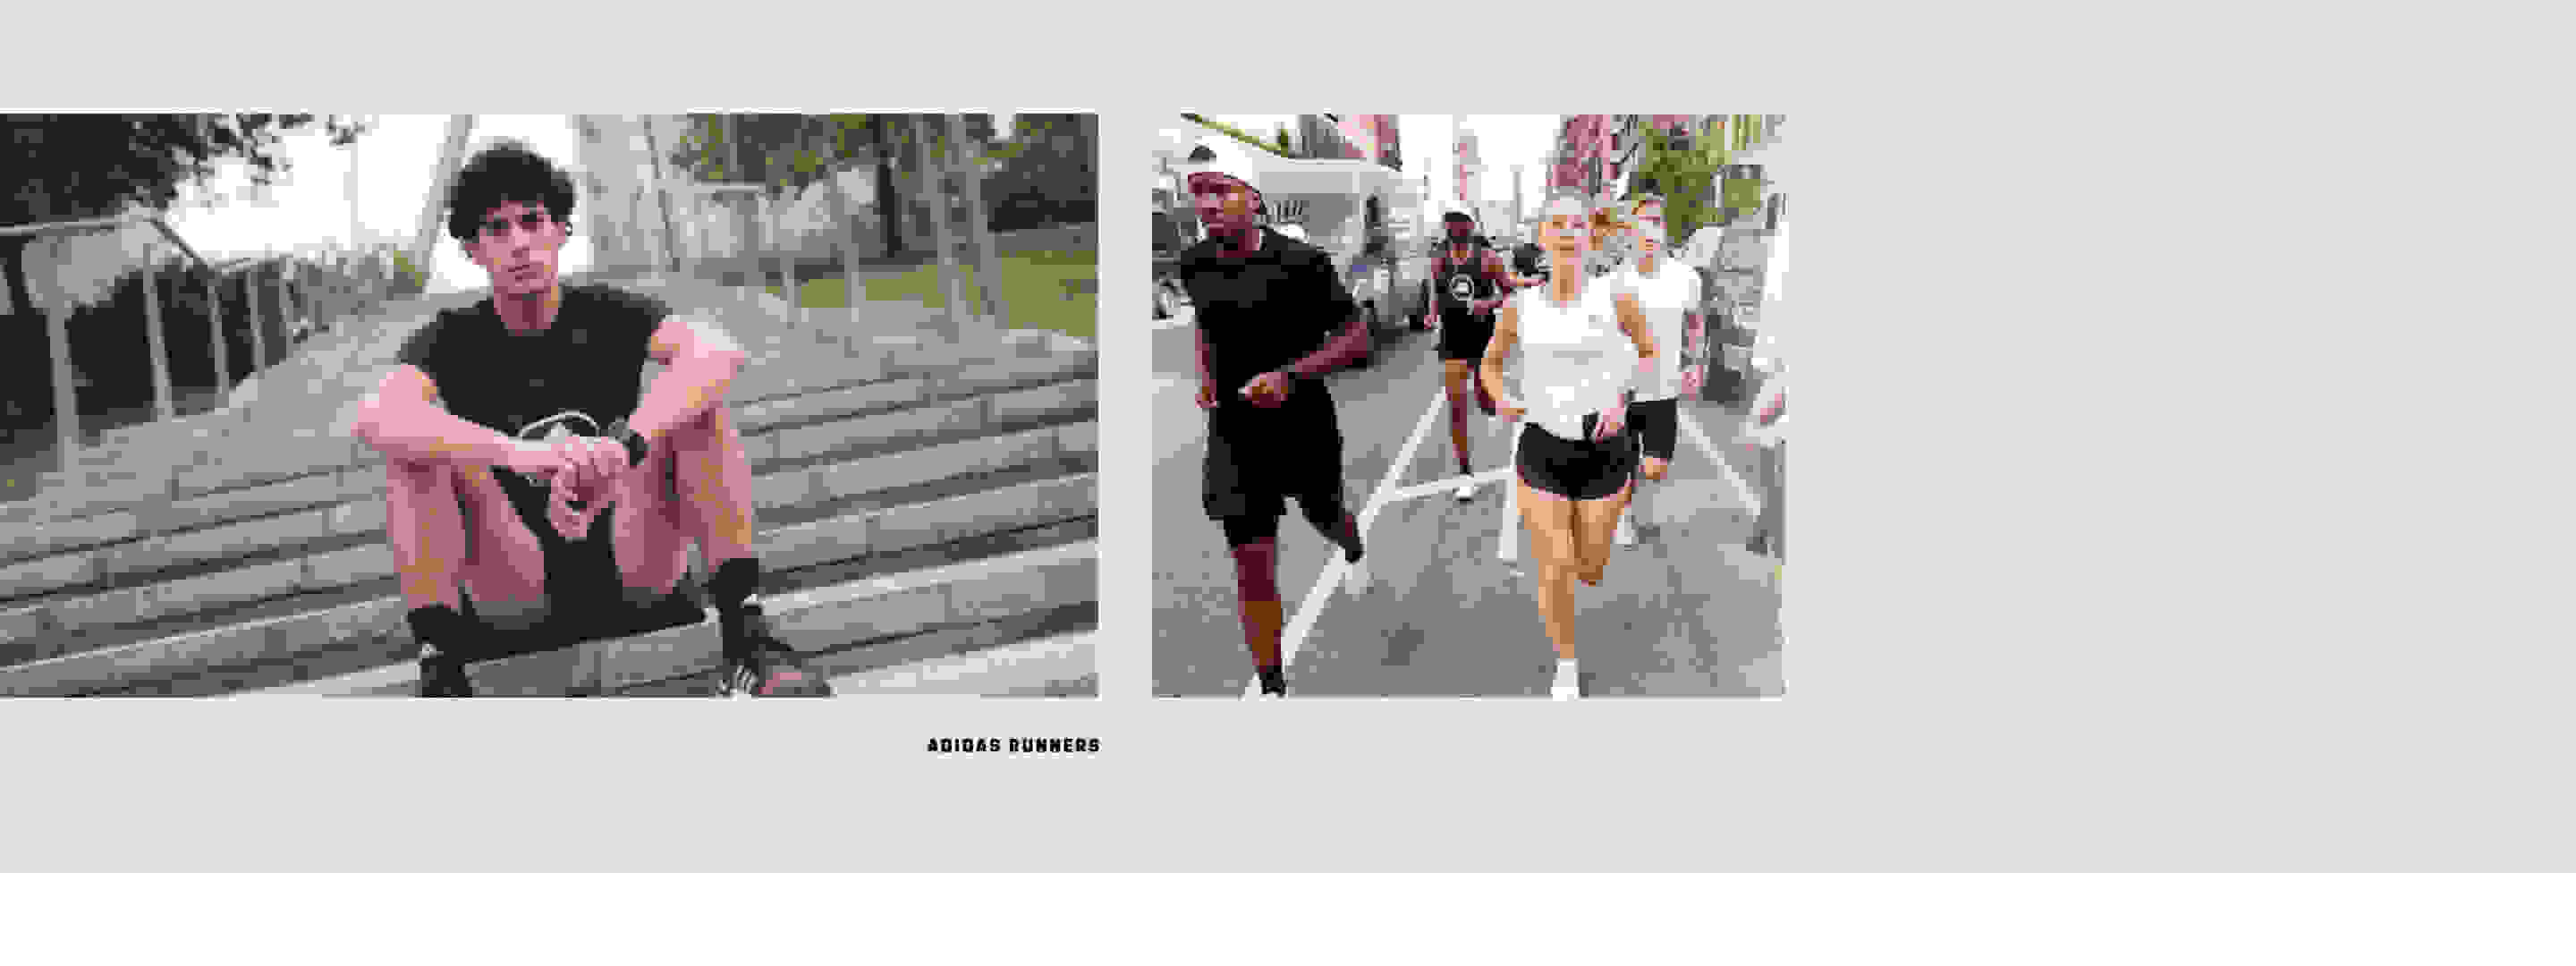 Dual-image composition. 1. Paolo Bellomo sits casually on a set of steps outdoor. 2. Jessie Zapo leads a running crew on a city run.